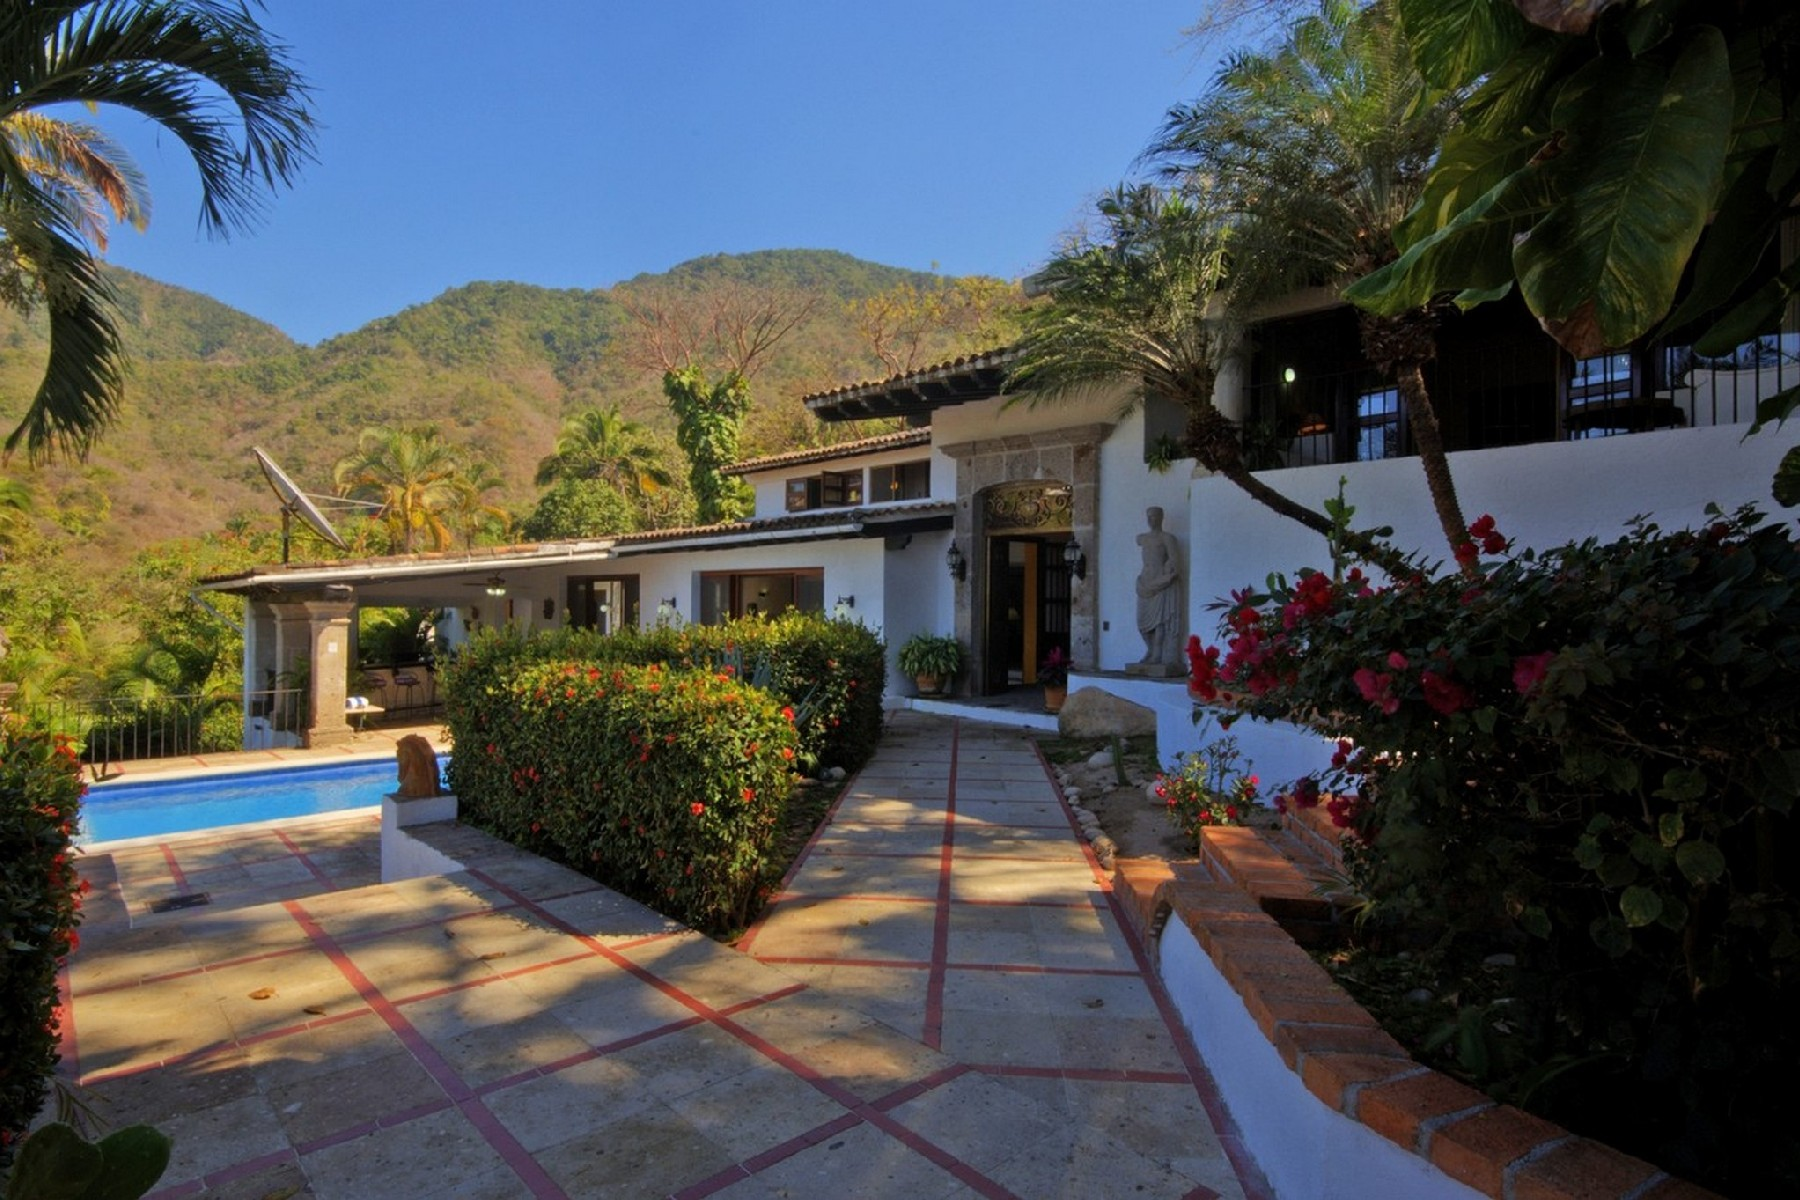 Additional photo for property listing at Hacienda Maria Elena + Adjancent Lot Carretera Barra de Navidad S/N Puerto Vallarta, Jalisco 48390 México